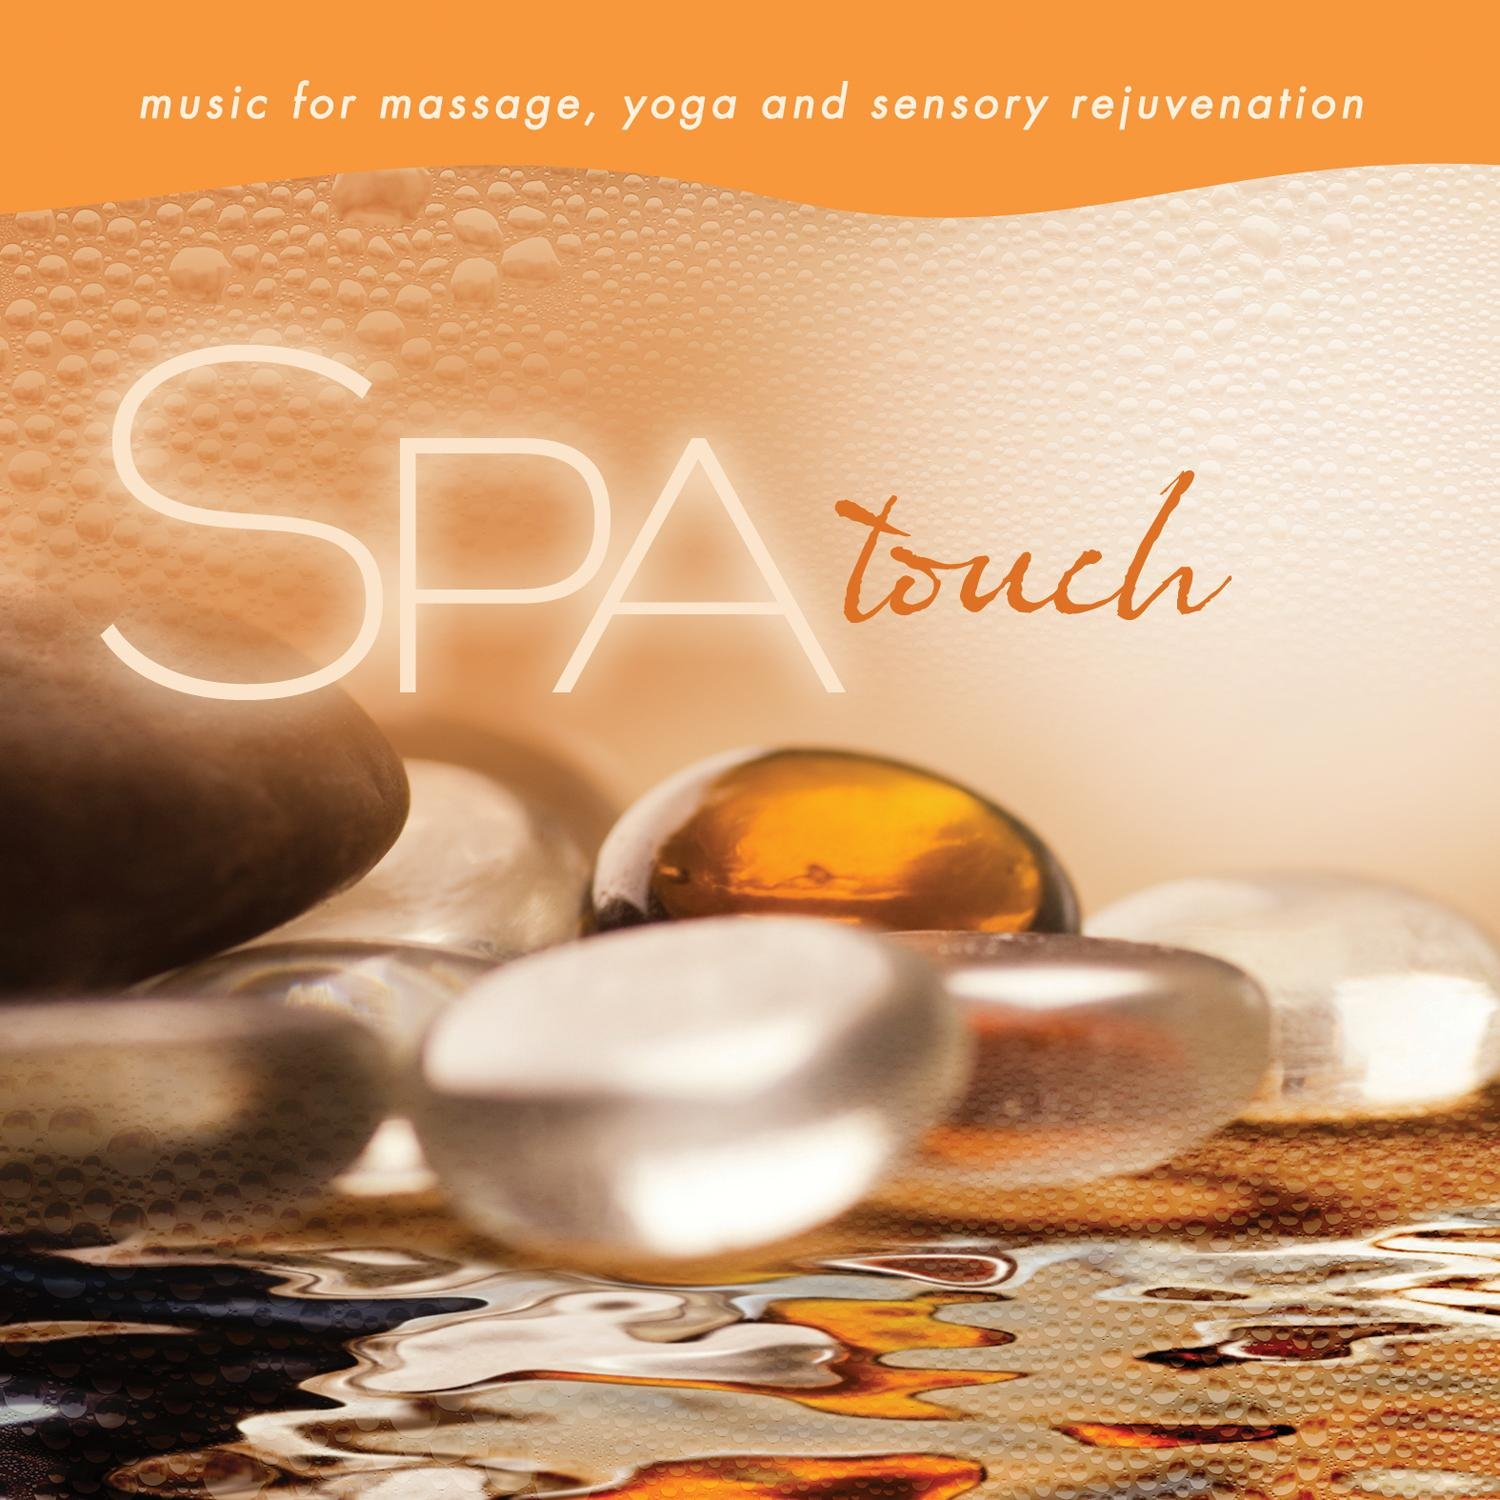 david arkenstone susan craig spa touch music for massage